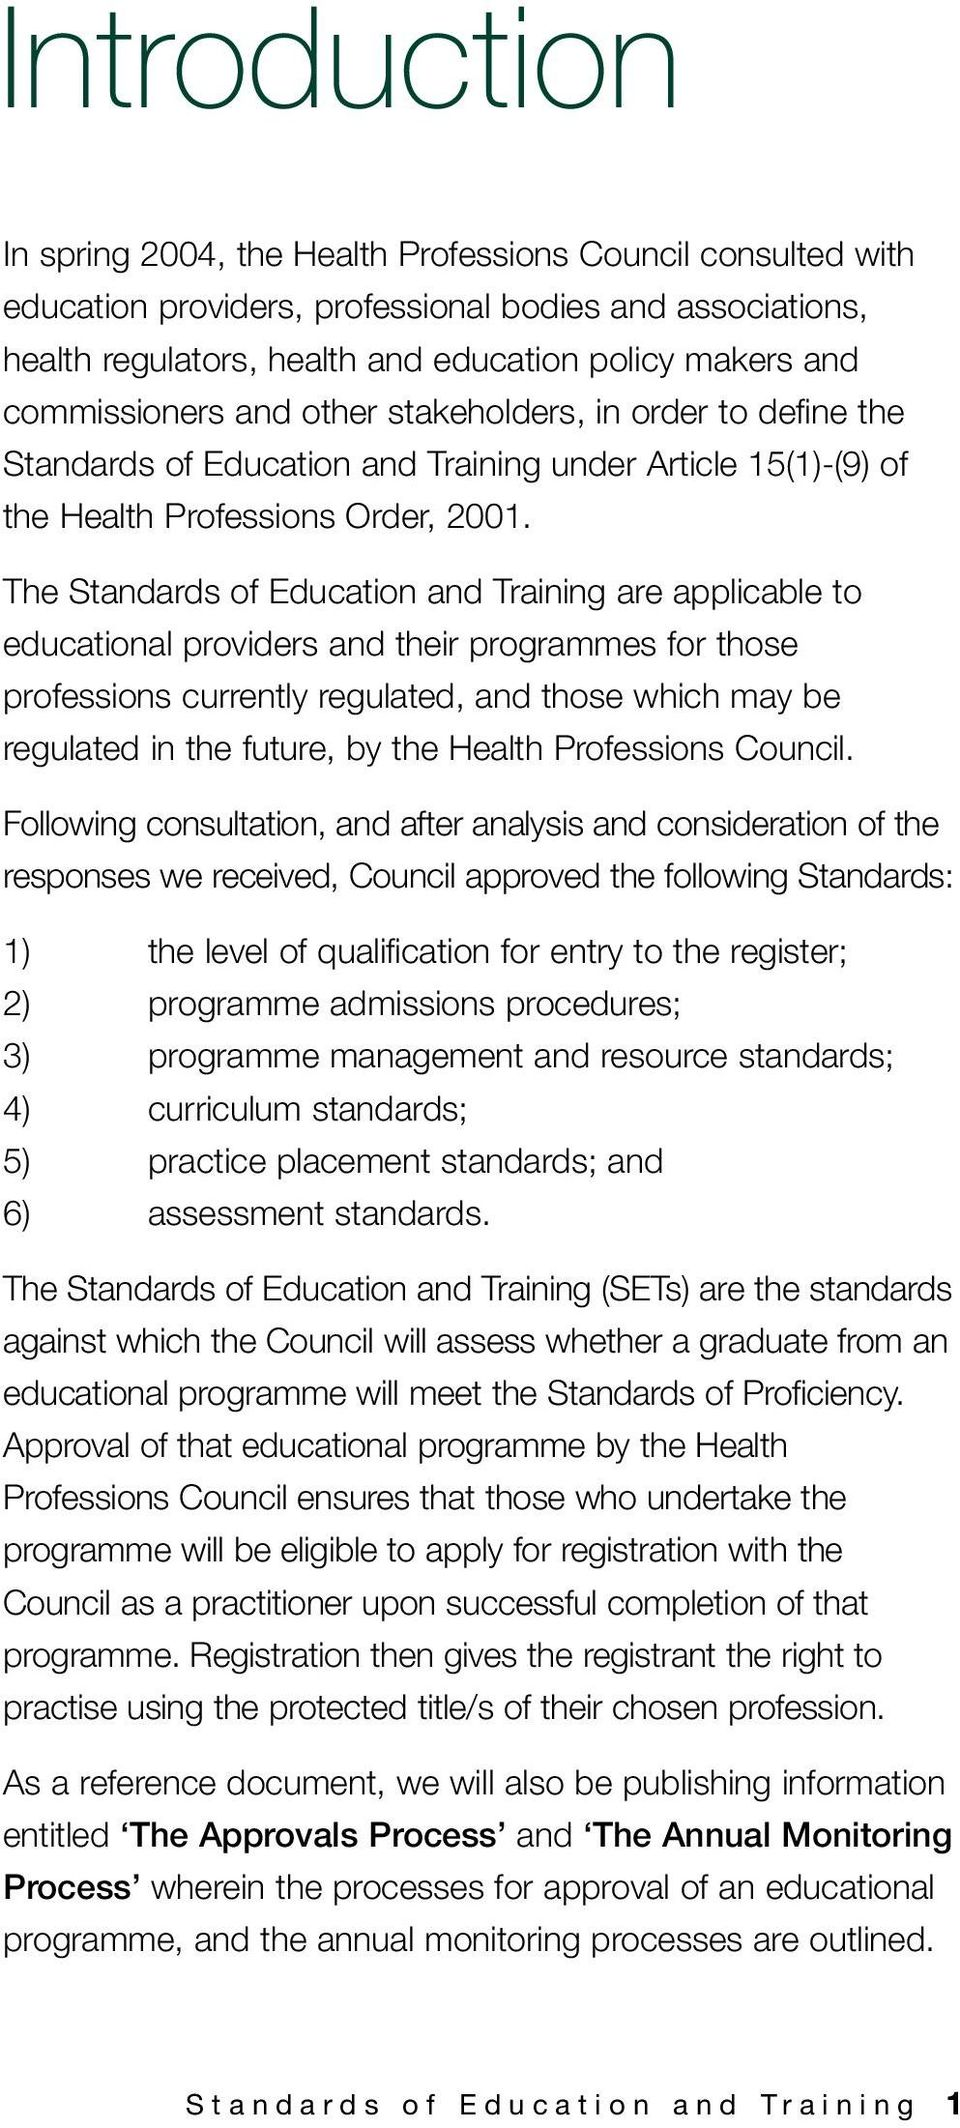 The Standards of Education and Training are applicable to educational providers and their programmes for those professions currently regulated, and those which may be regulated in the future, by the